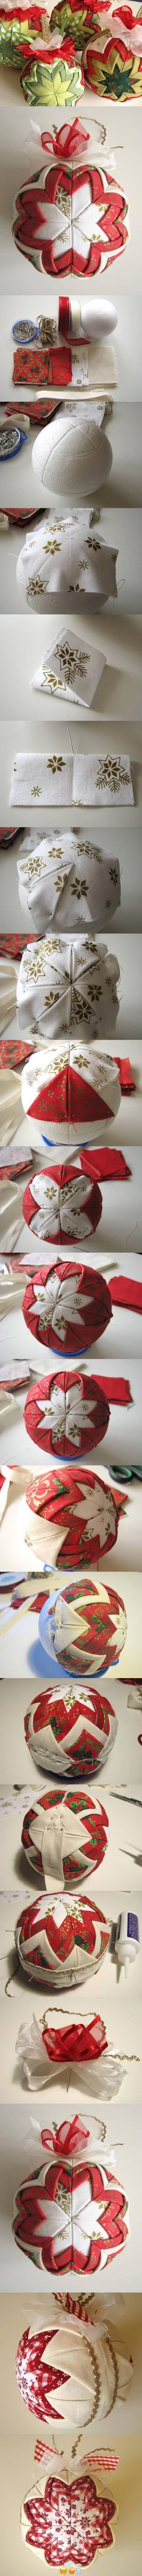 Folded Fabric Christmas Balls